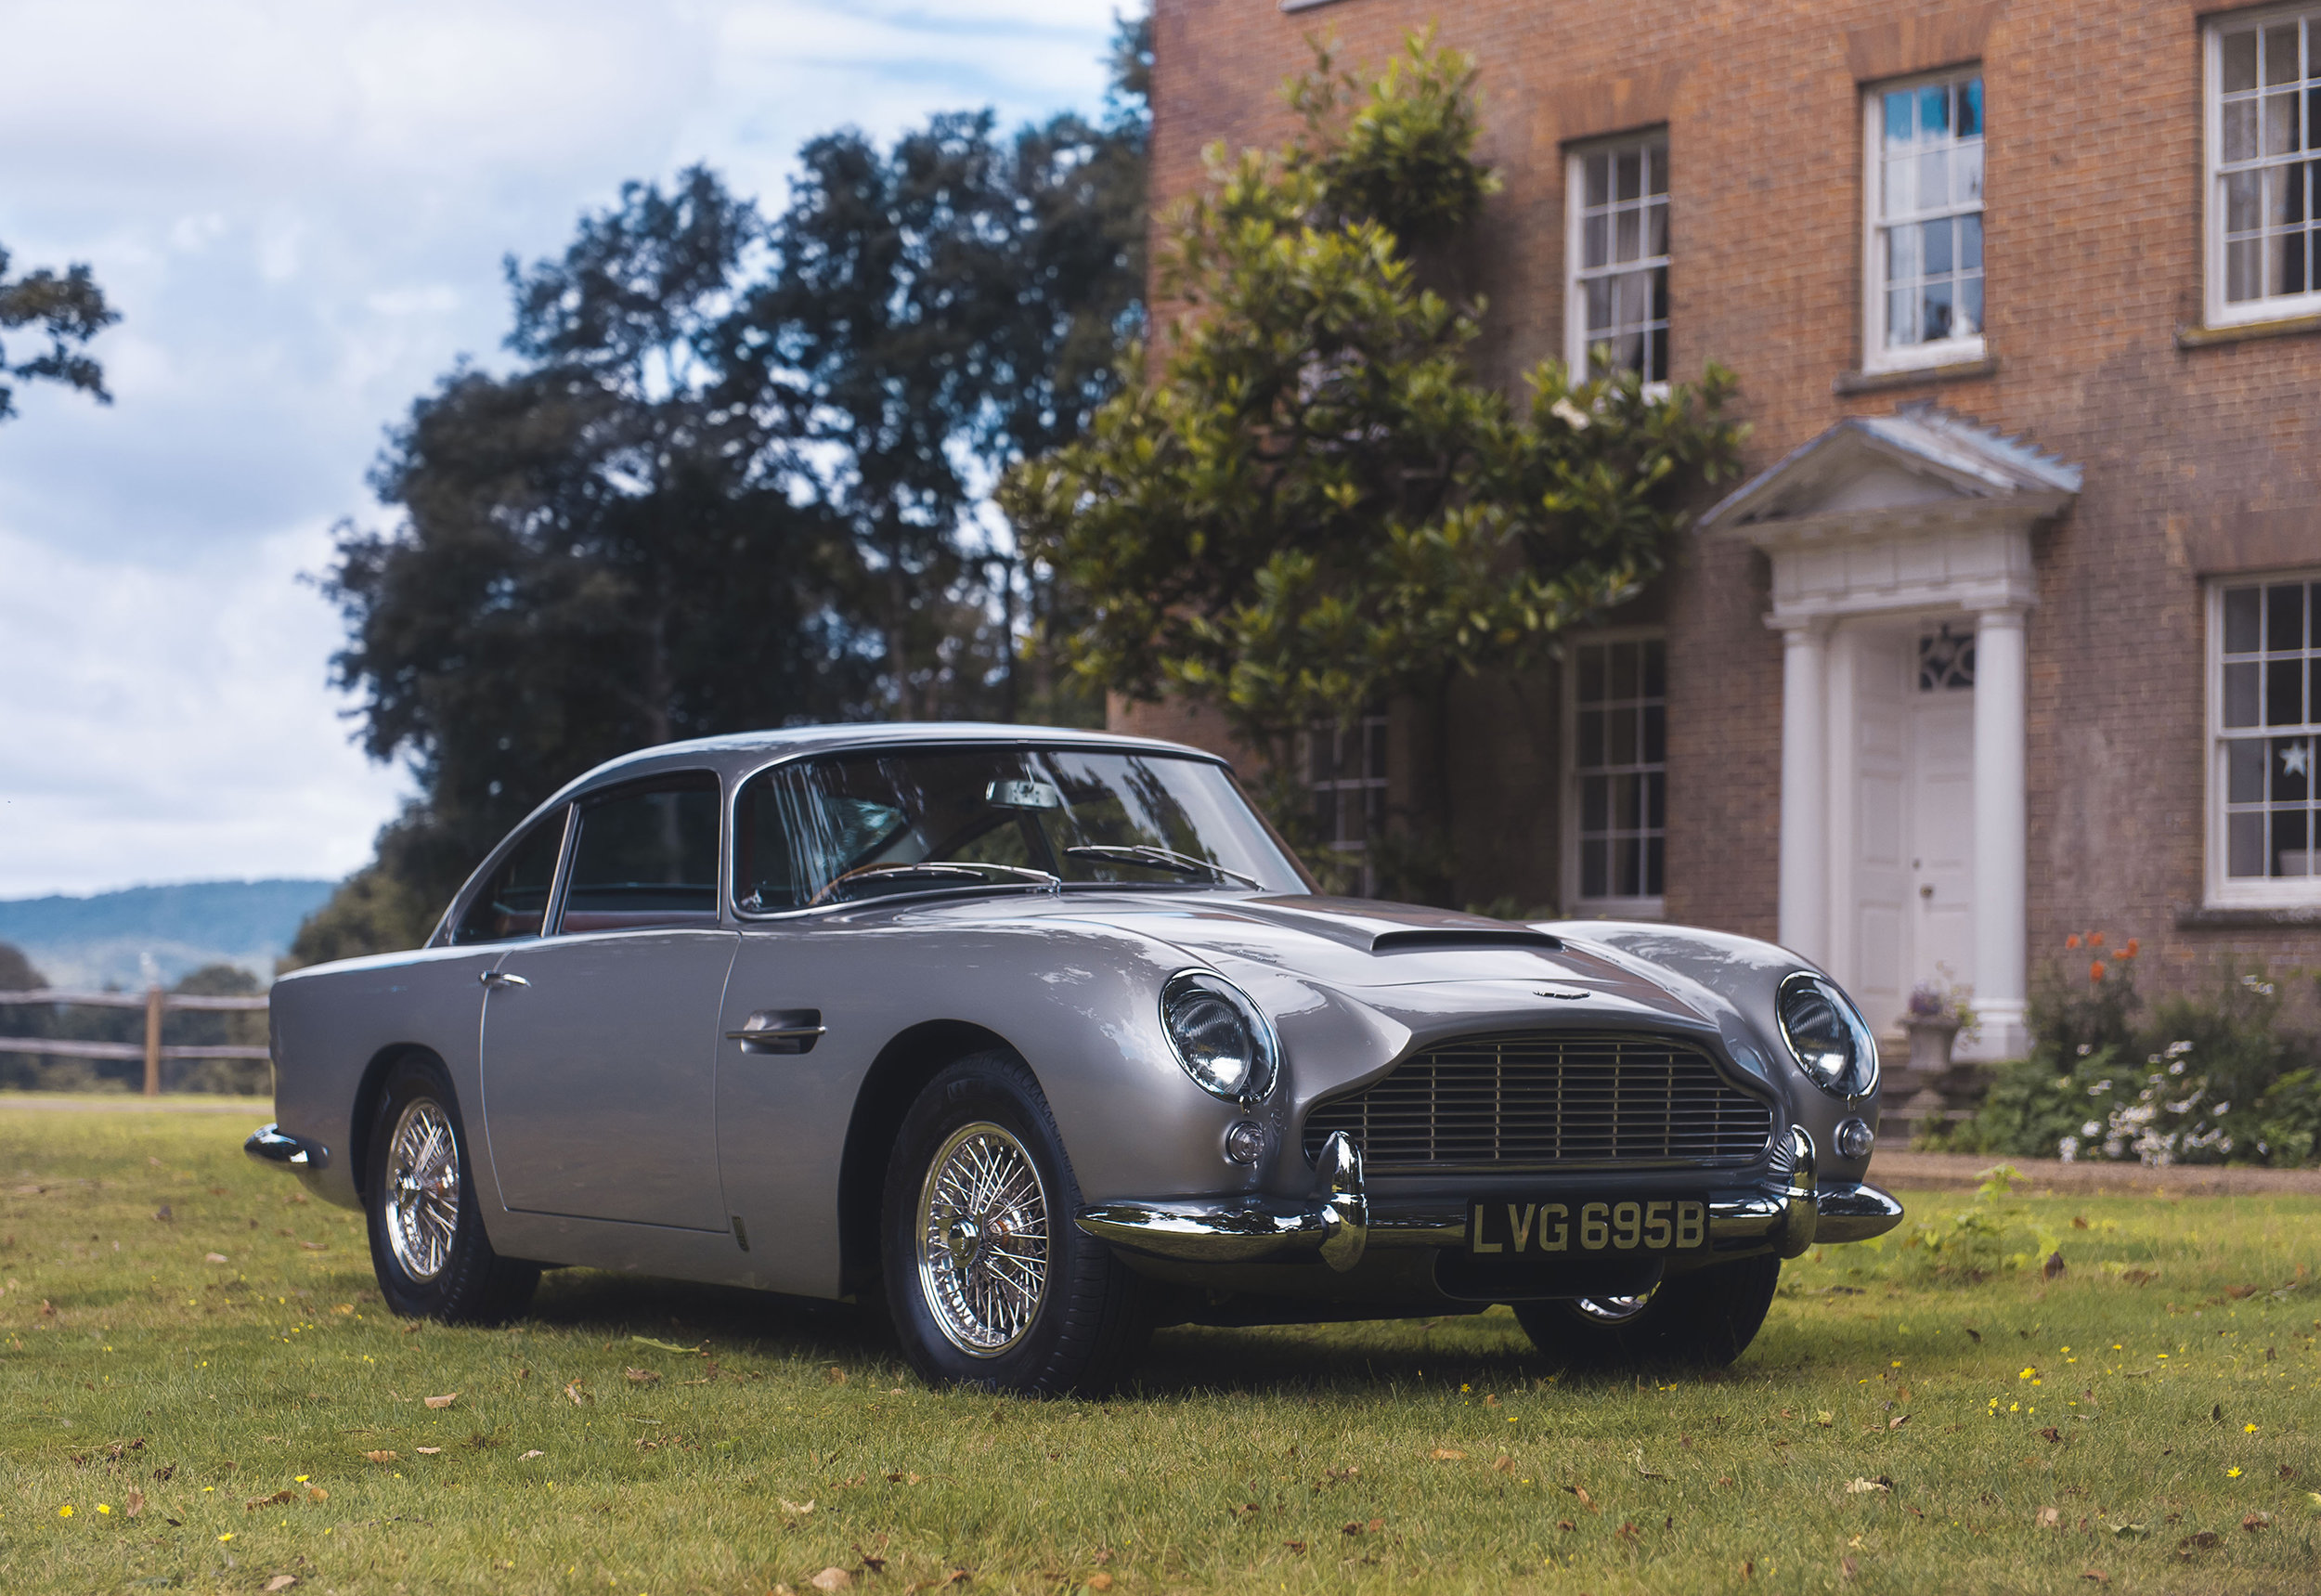 1964 Aston Martin DB5 sold by Coys for ?825,000 on Vero with Apple Pay_1.JPG